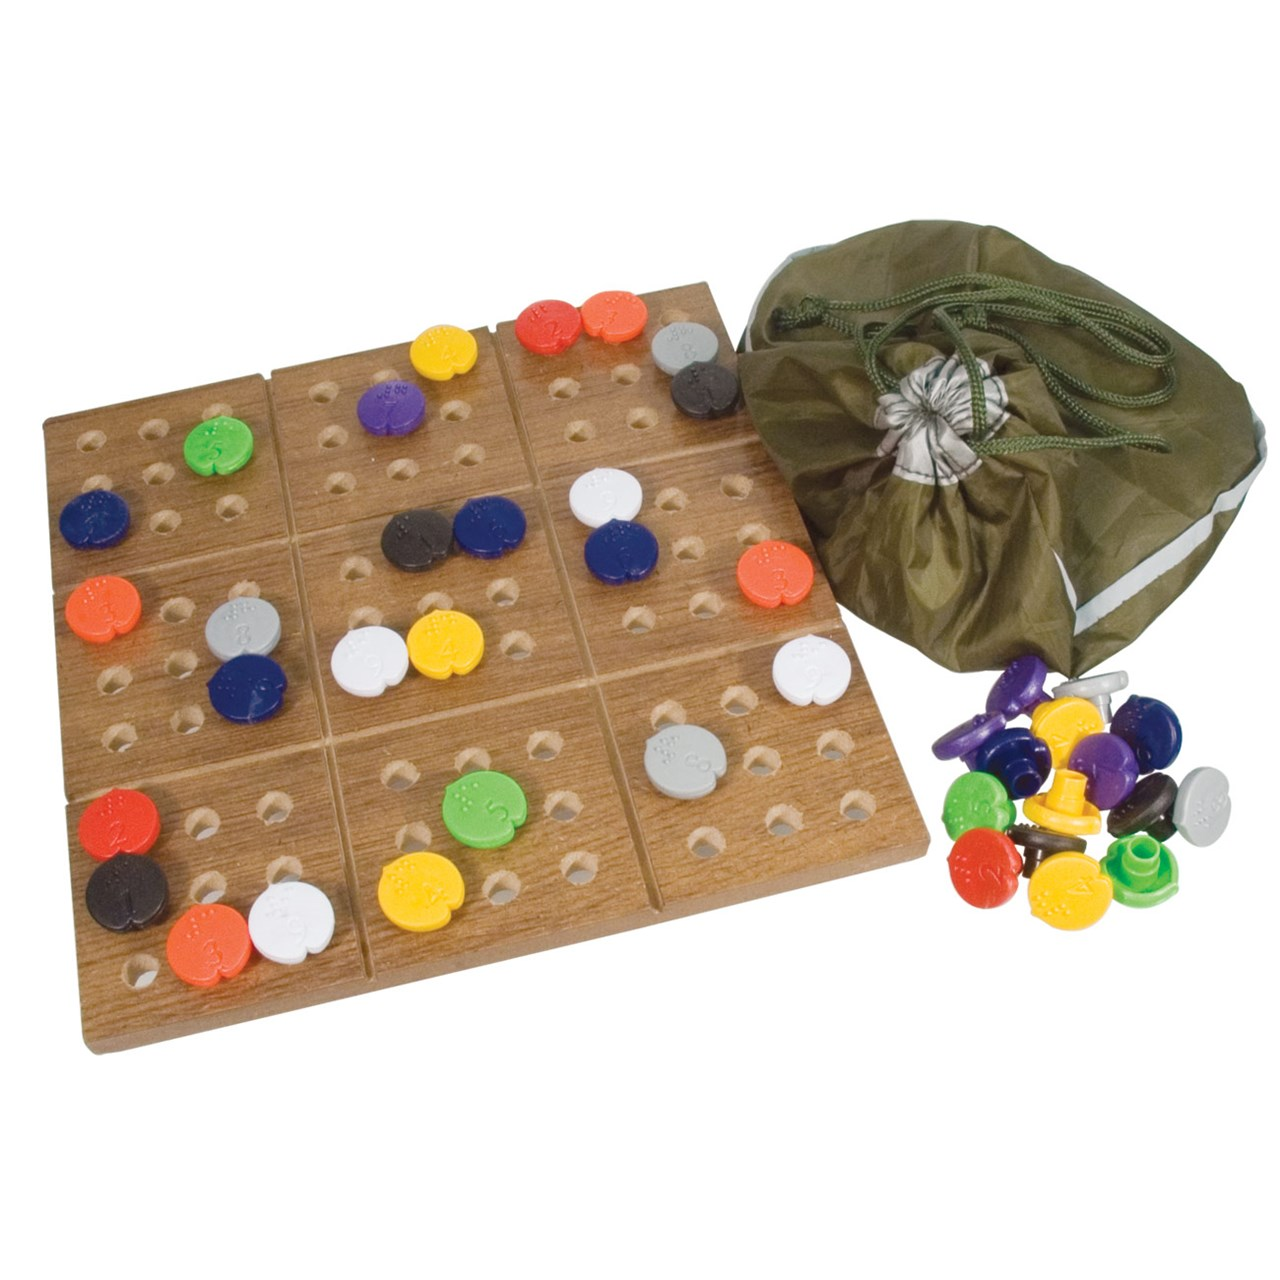 Maxiaids Braille Sudoku Puzzle Game With Board